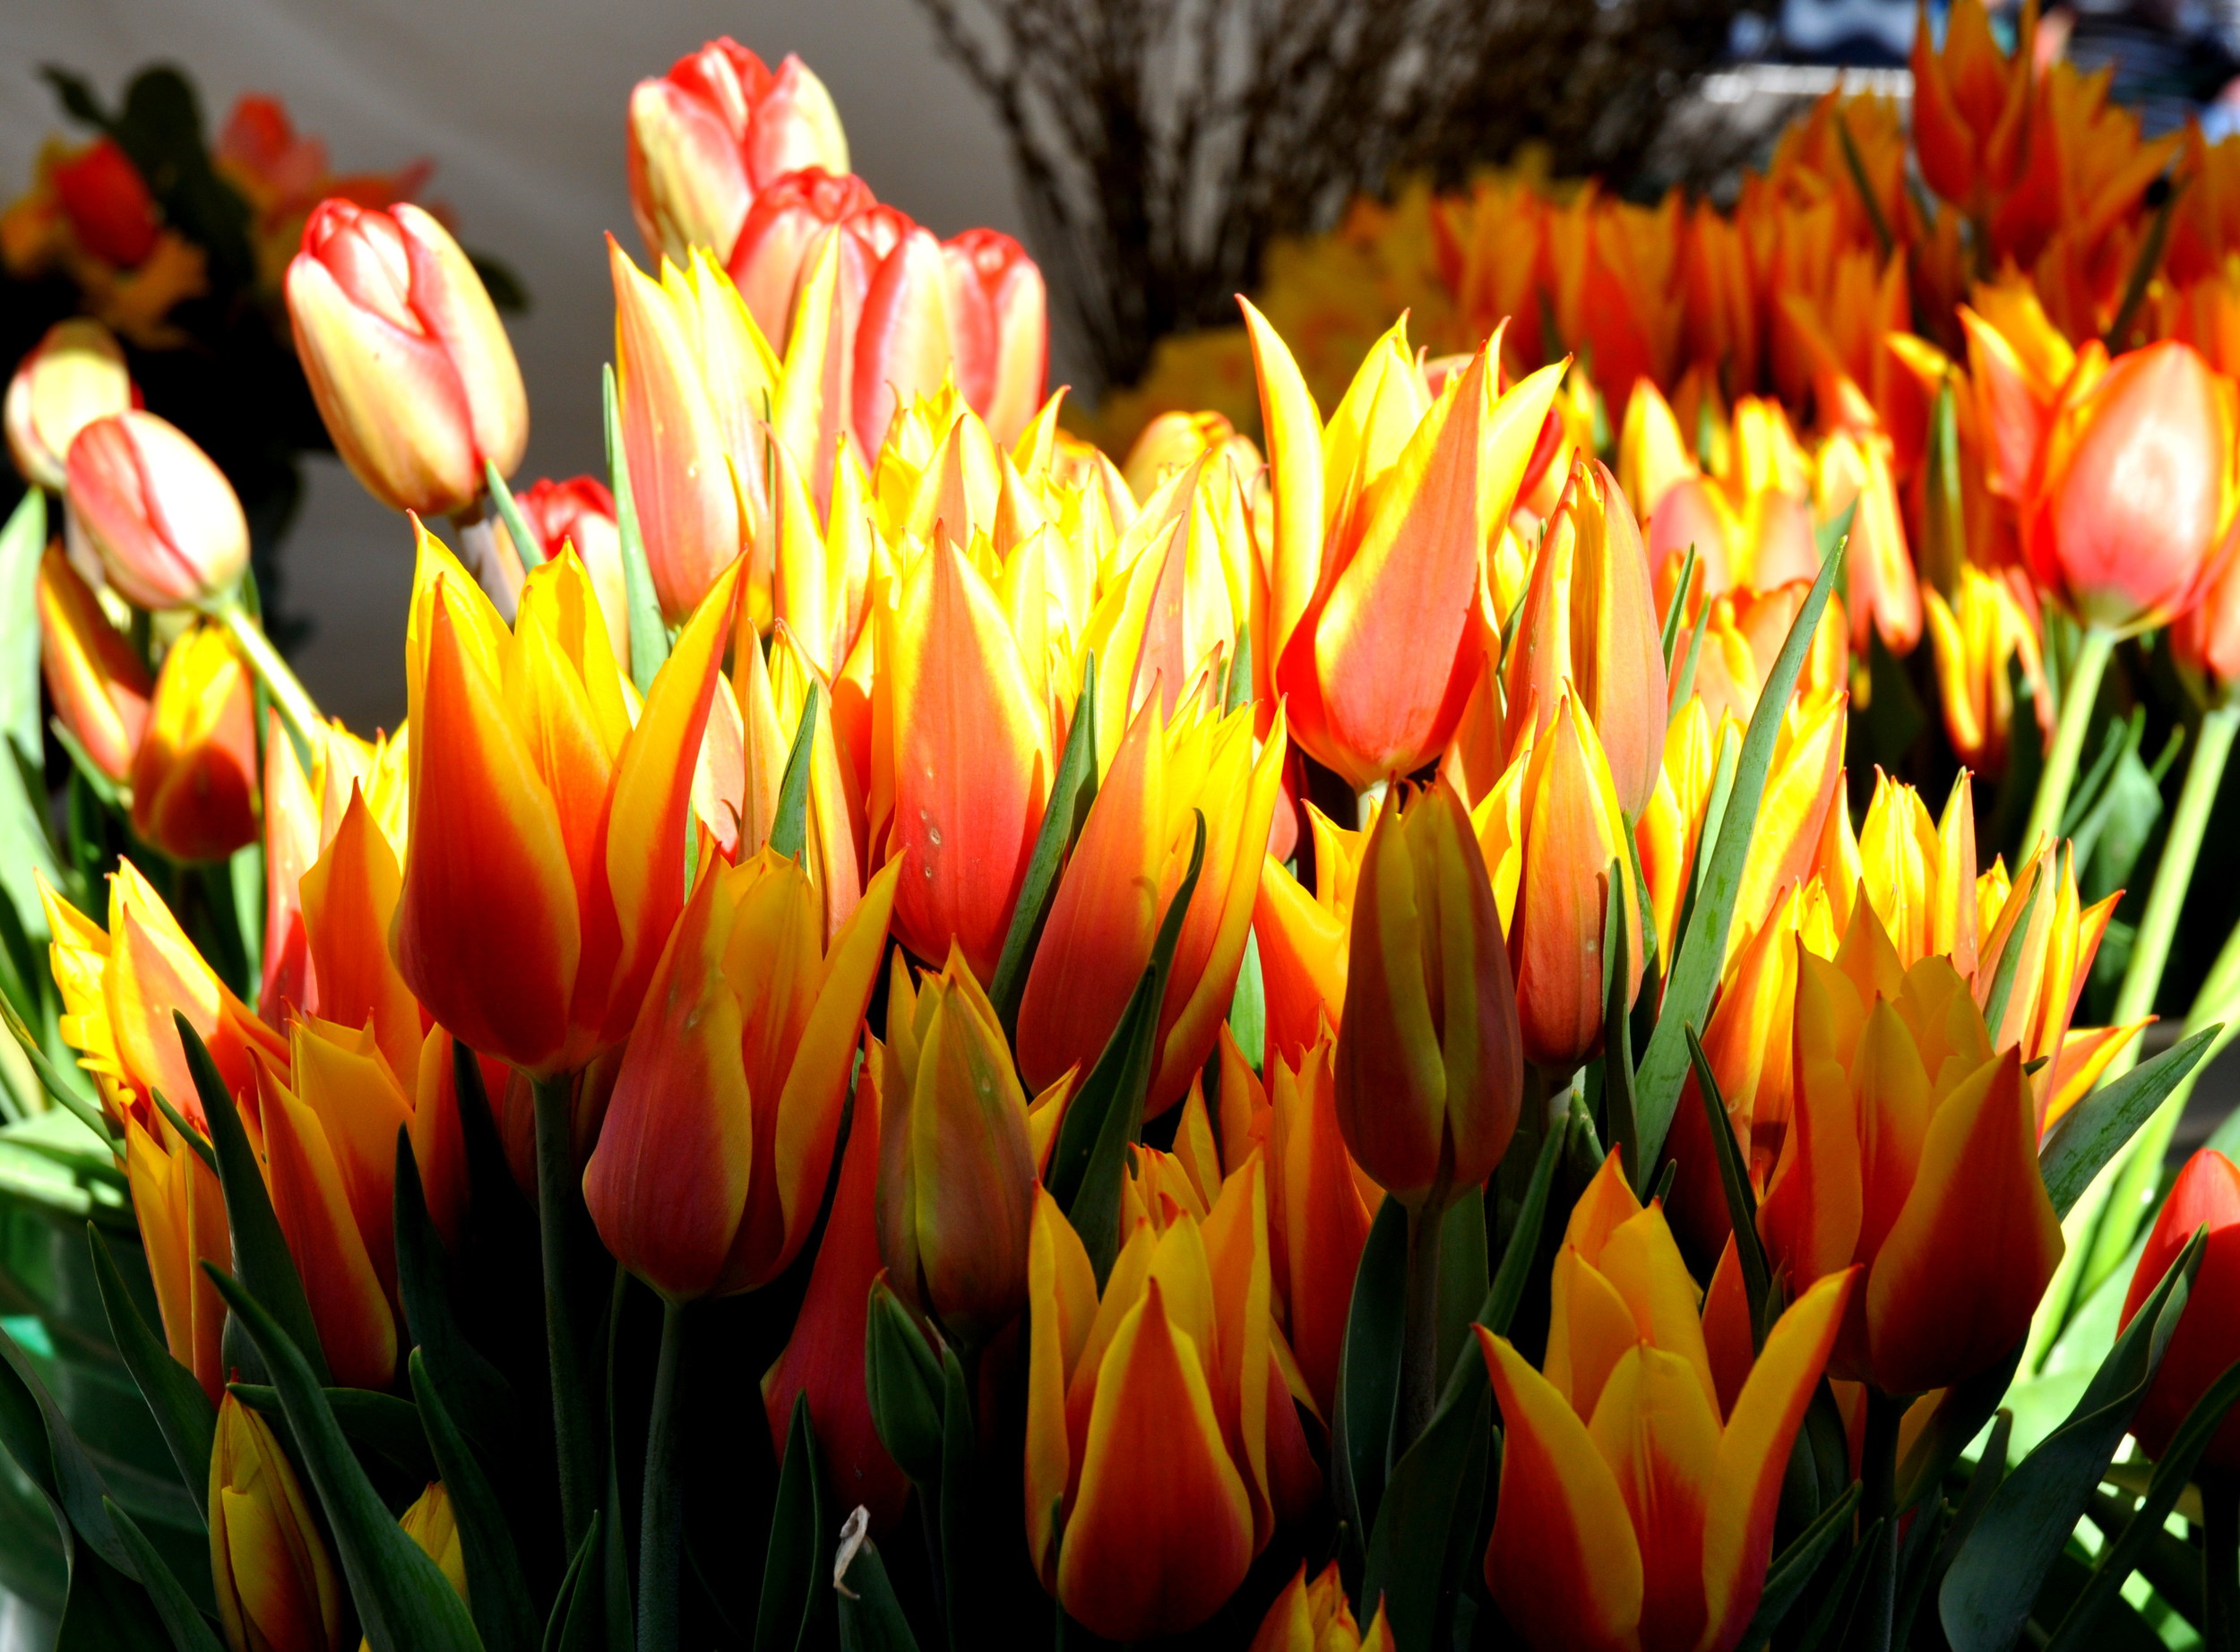 Spectacular tulips from Ia's Garden. Photo copyright 2014 by Zachary D. Lyons.